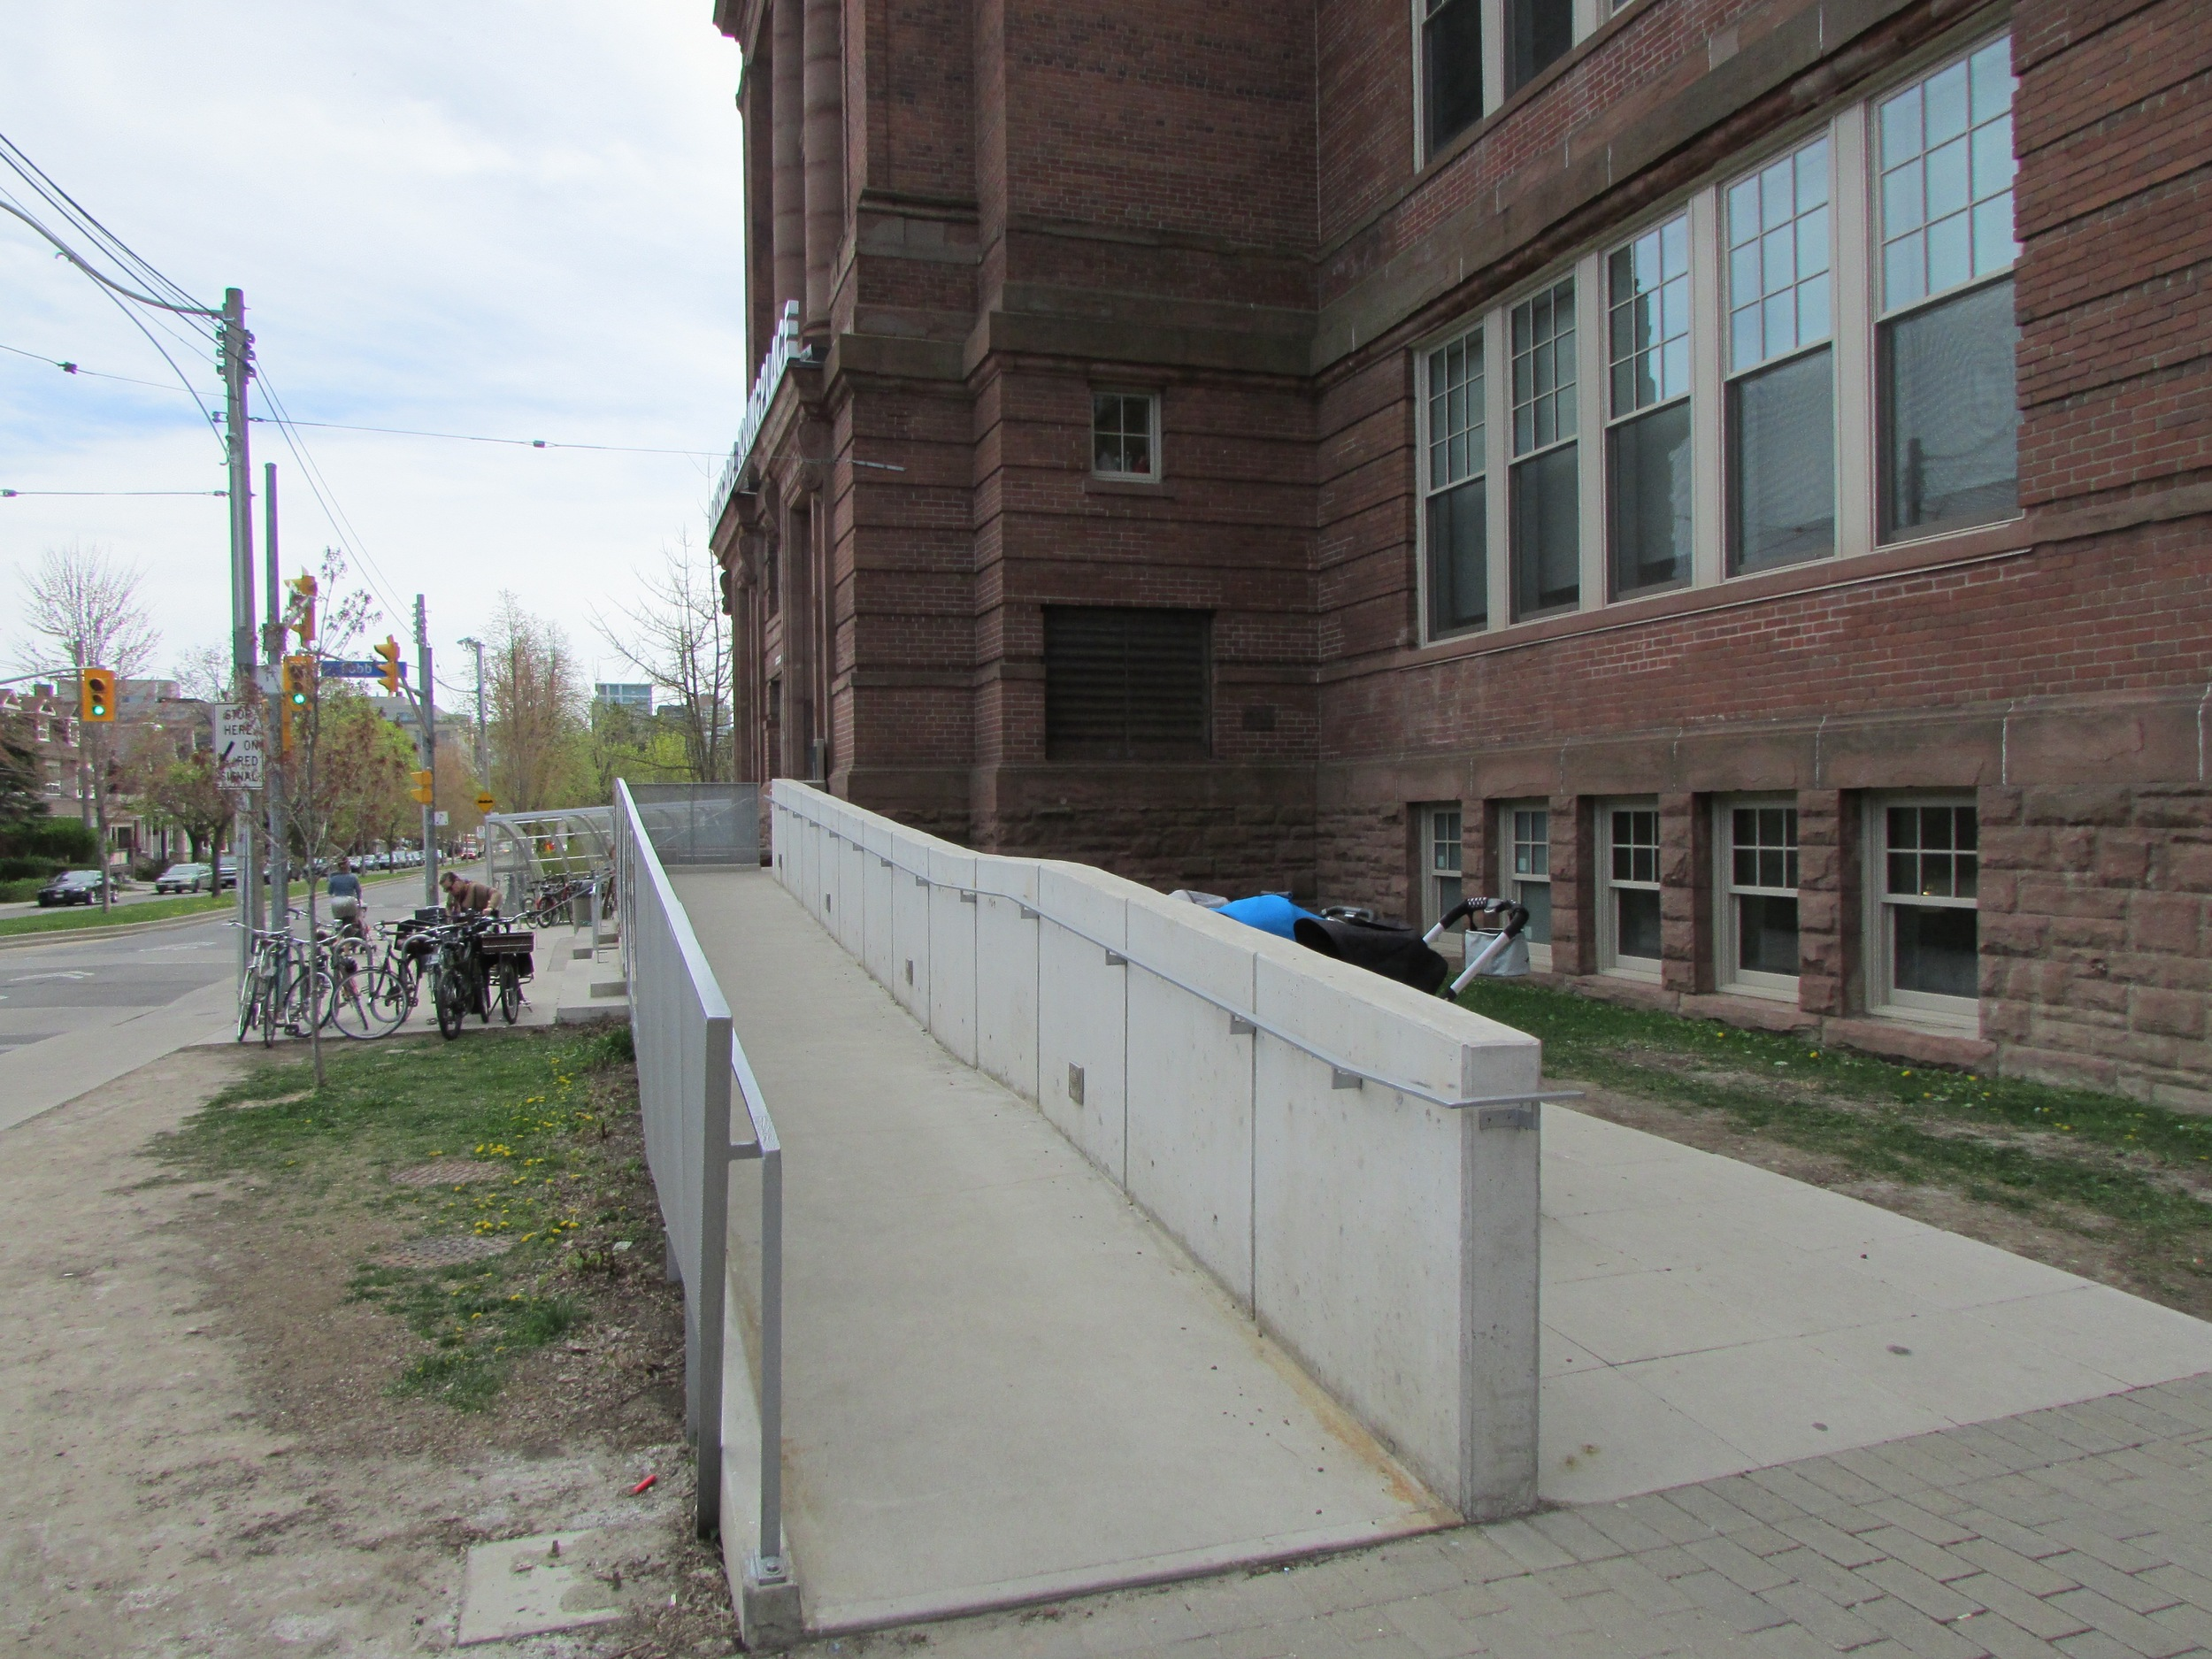 Picture of ramp in front of the building